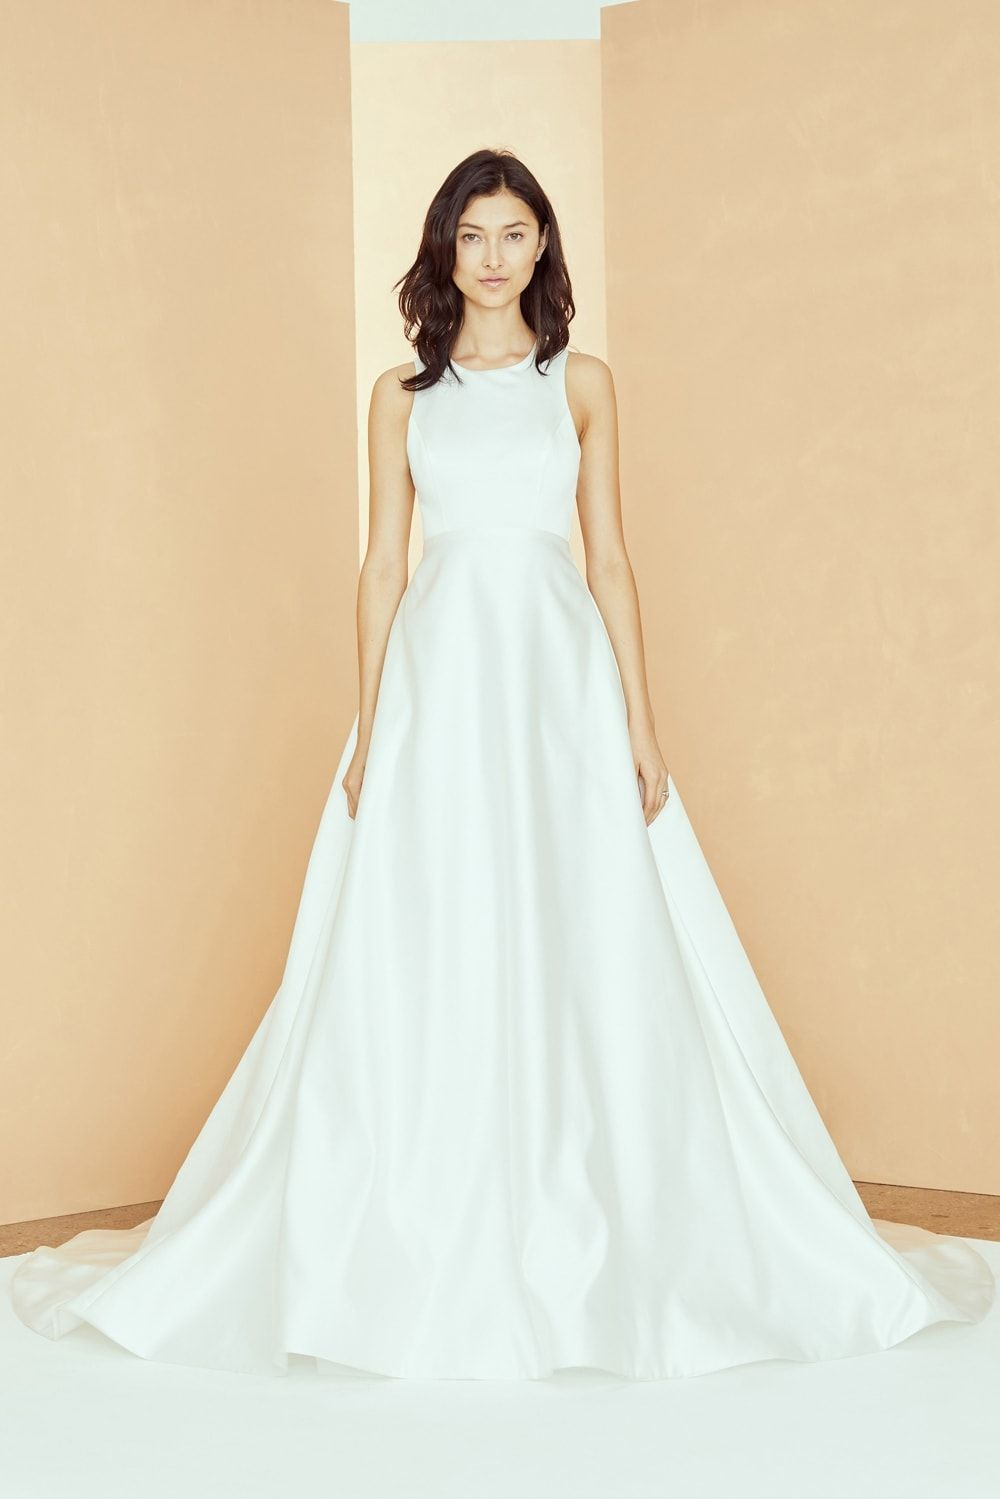 Nouvelle Amsale Wedding Dresses Fall 2020 Dress For The Wedding In 2020 Amsale Wedding Dress Wedding Dress With Pockets Ball Gowns Wedding